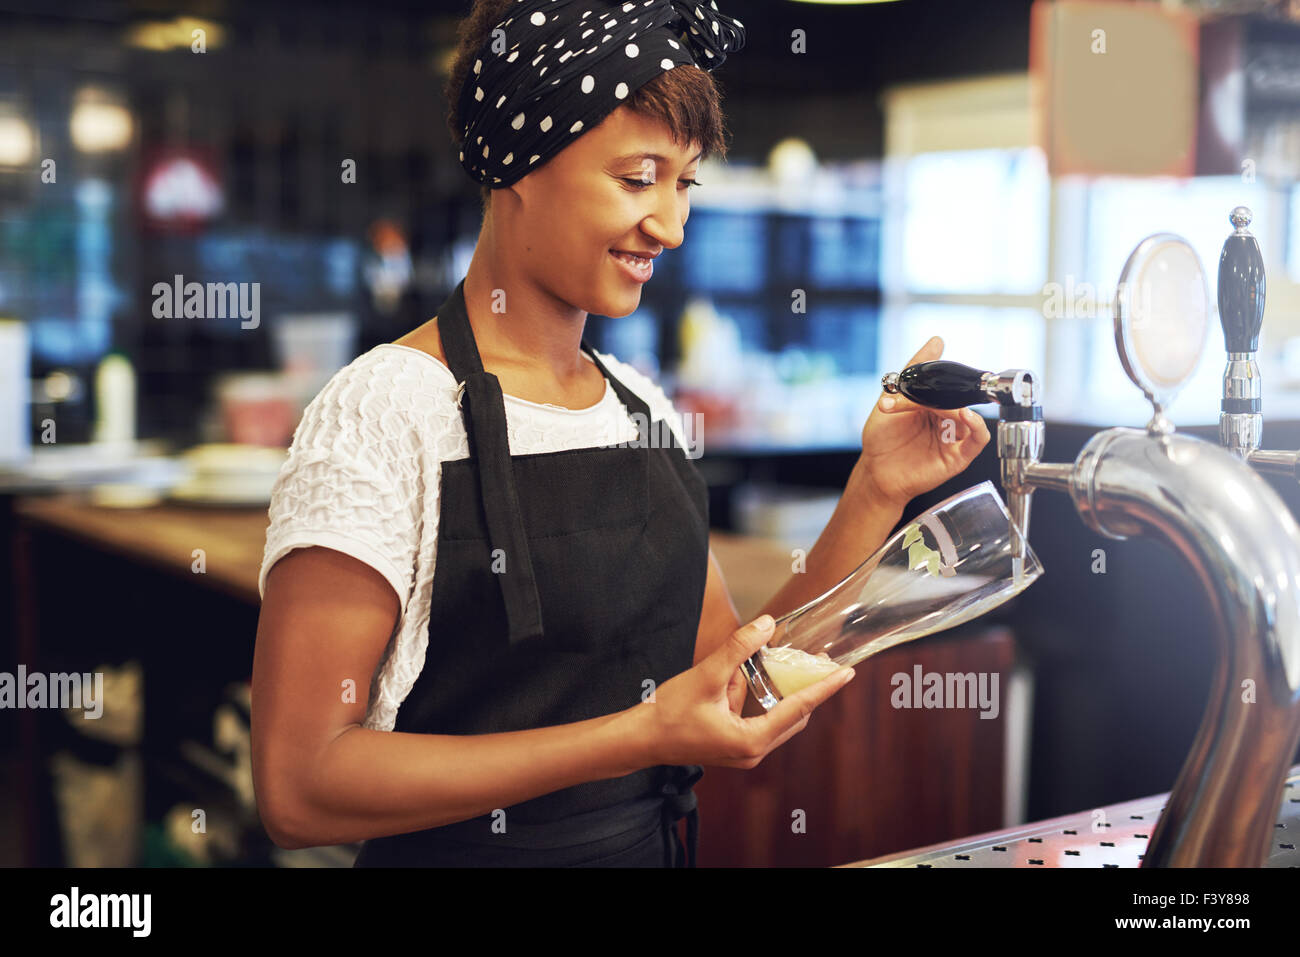 Young attractive female African American bartender pouring a glass of draft beer from the keg dispensing it from - Stock Image